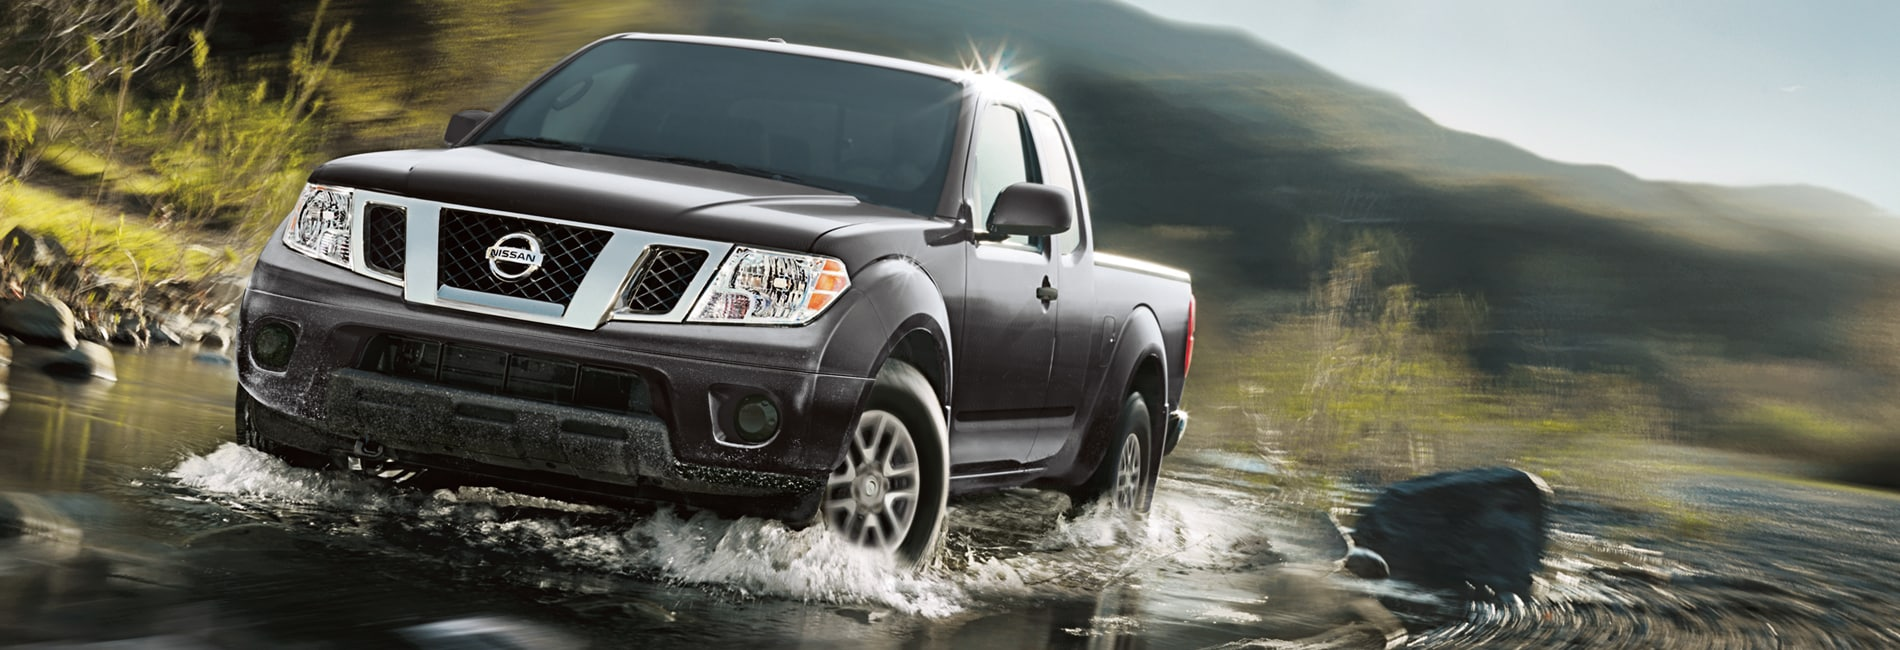 Nissan Frontier Exterior Vehicle Features